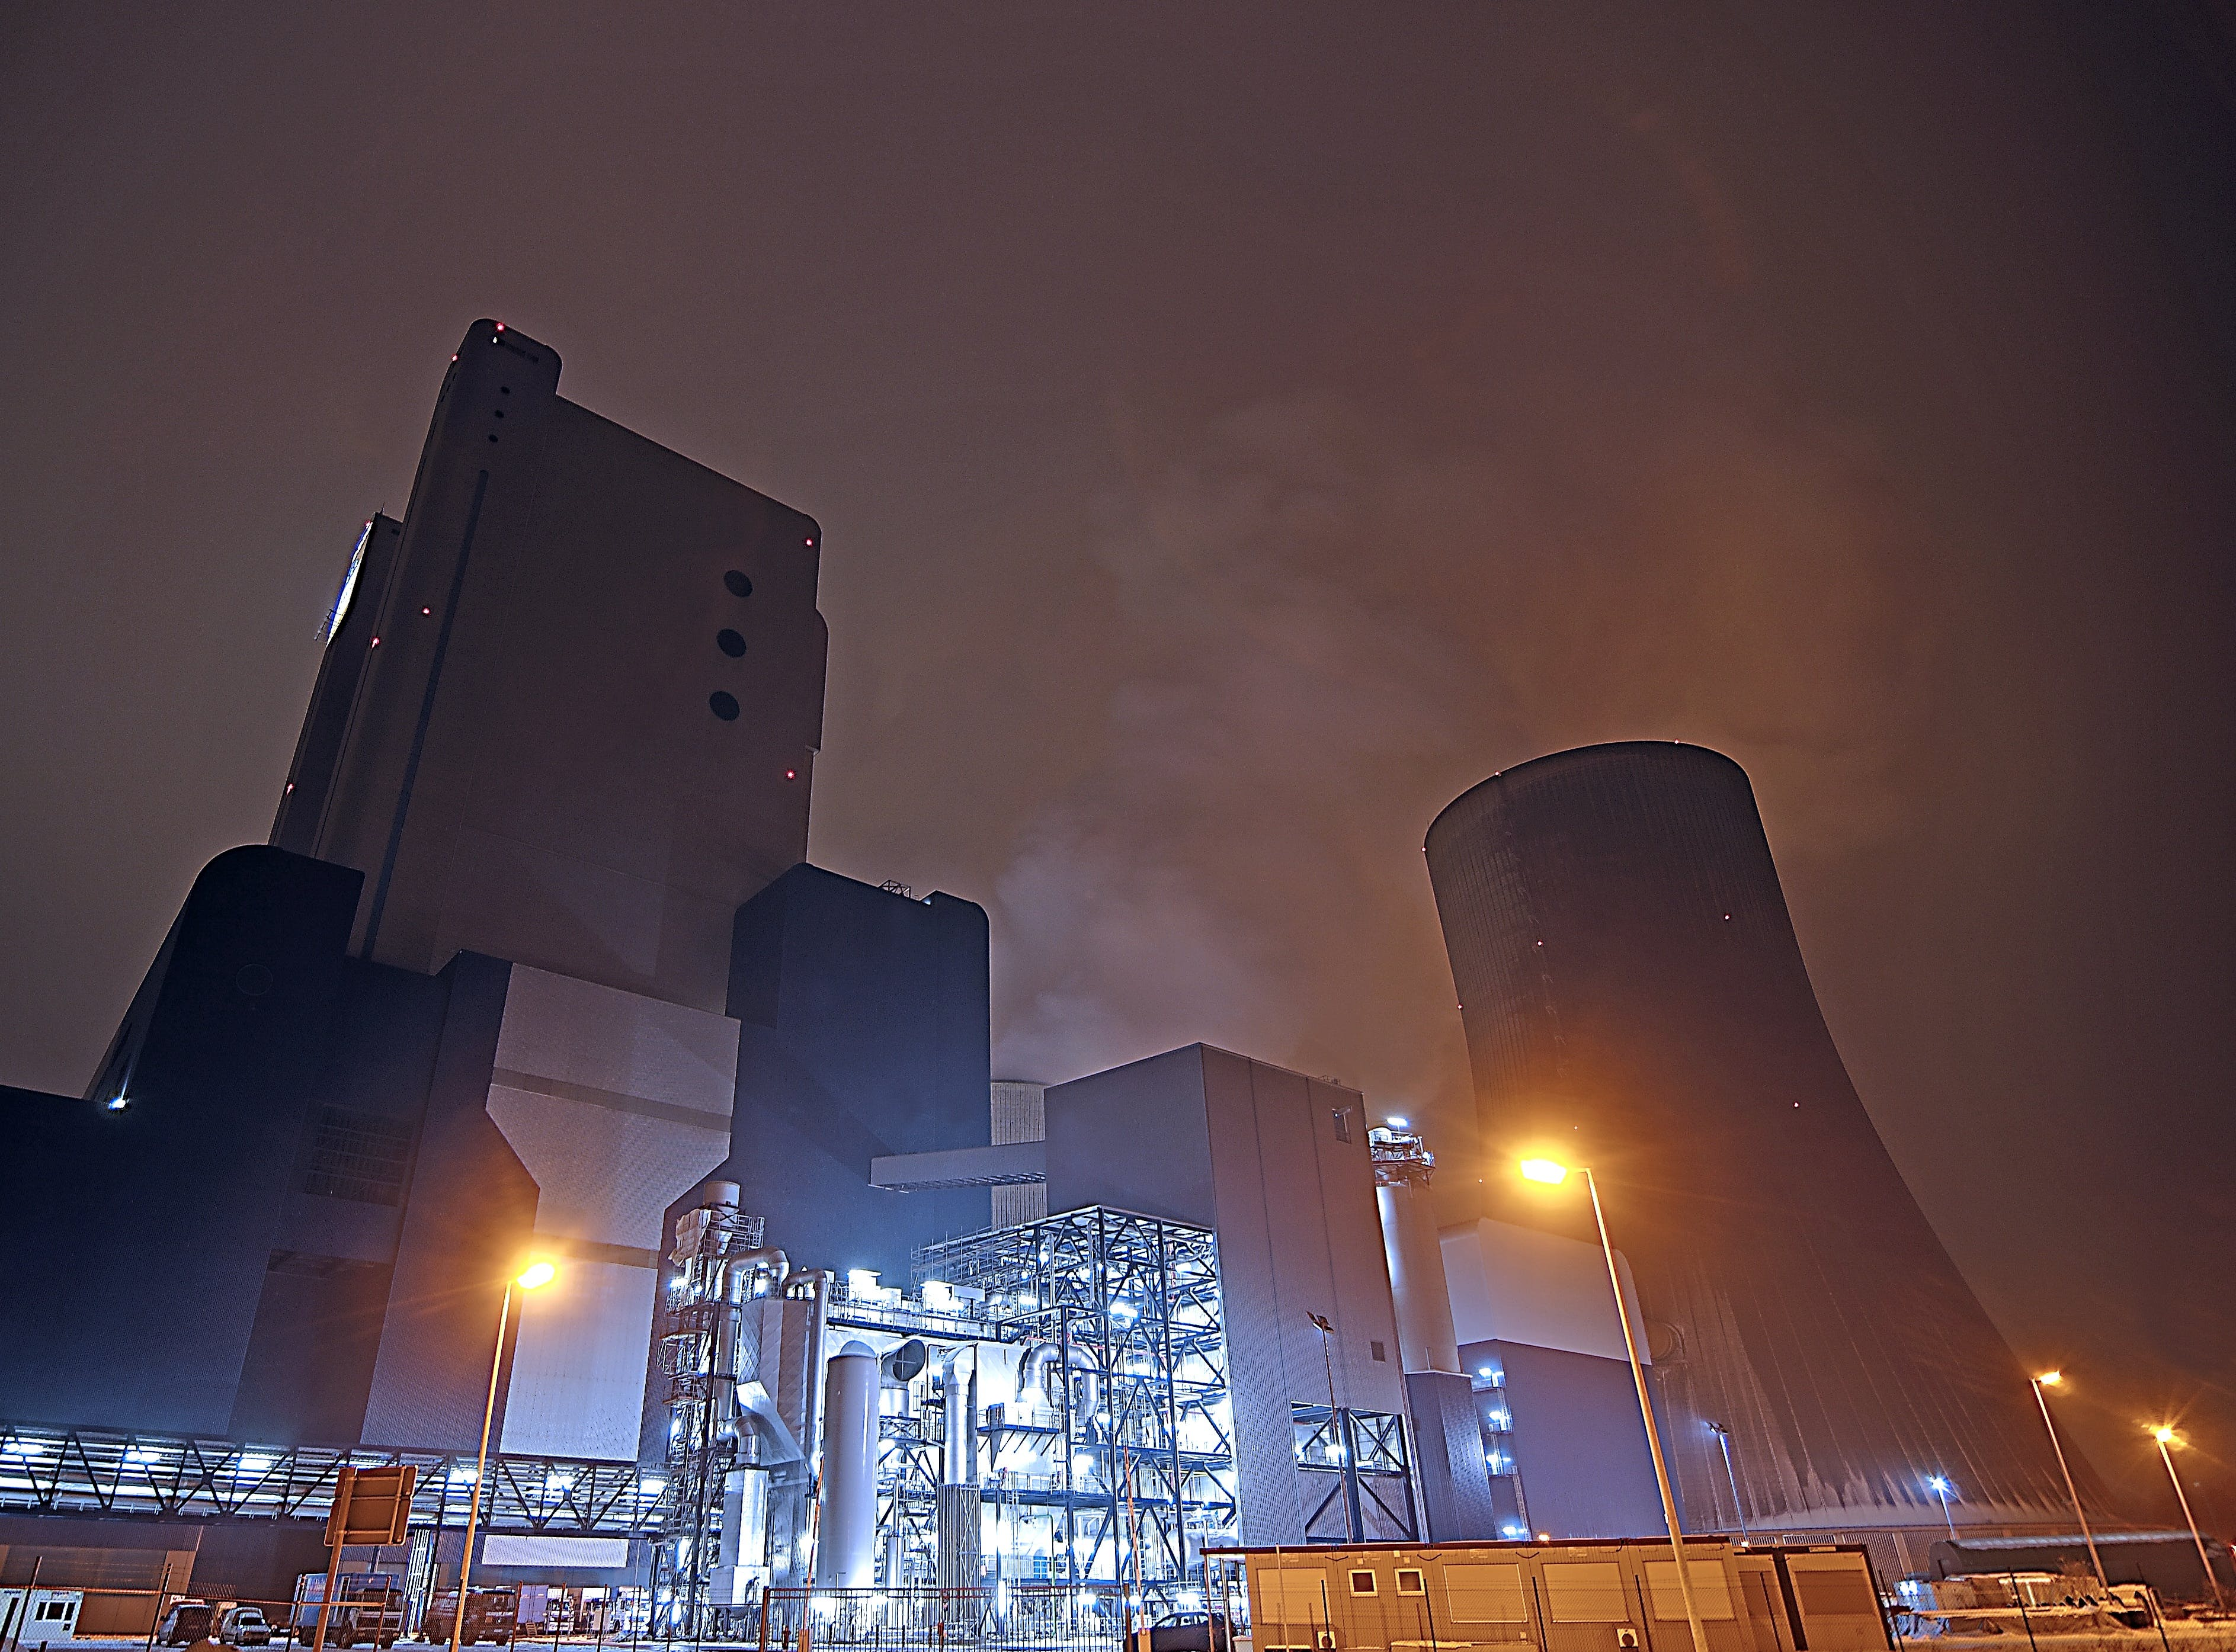 Factory at Nightime